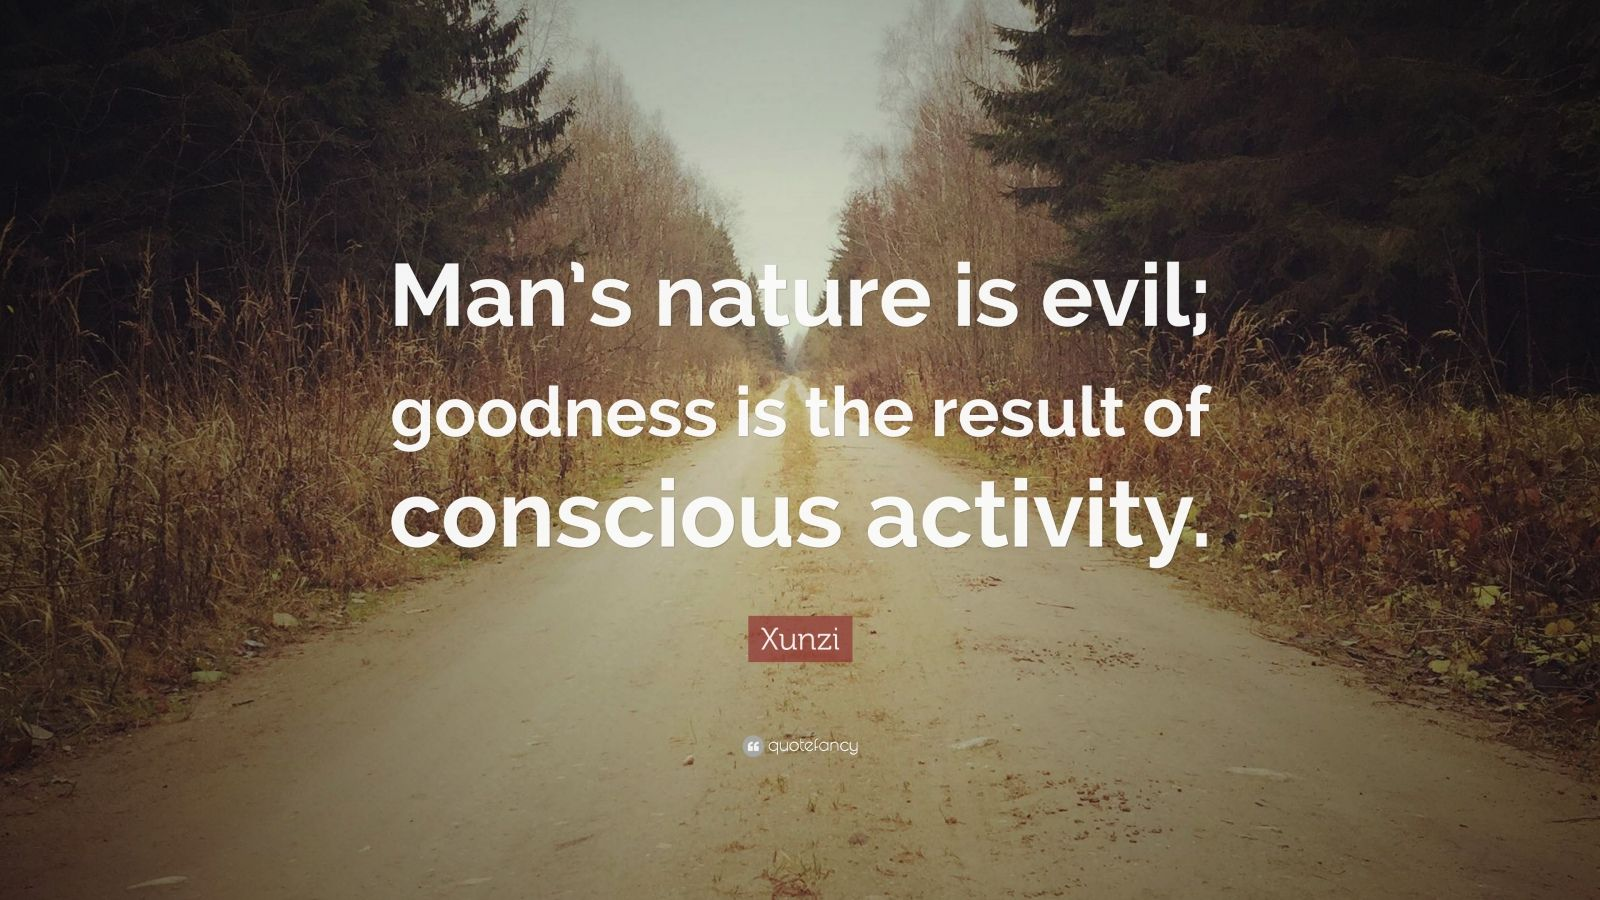 the evil nature of mankind He rejected the notion that the nature of man is so corrupt that it cannot obey god and taught a sort of self-induced morality and religion pelagius rejected the arguments of those who claimed that they sinned because of human weakness, and insisted that god made human beings free to choose between good and evil and that sin is voluntary.